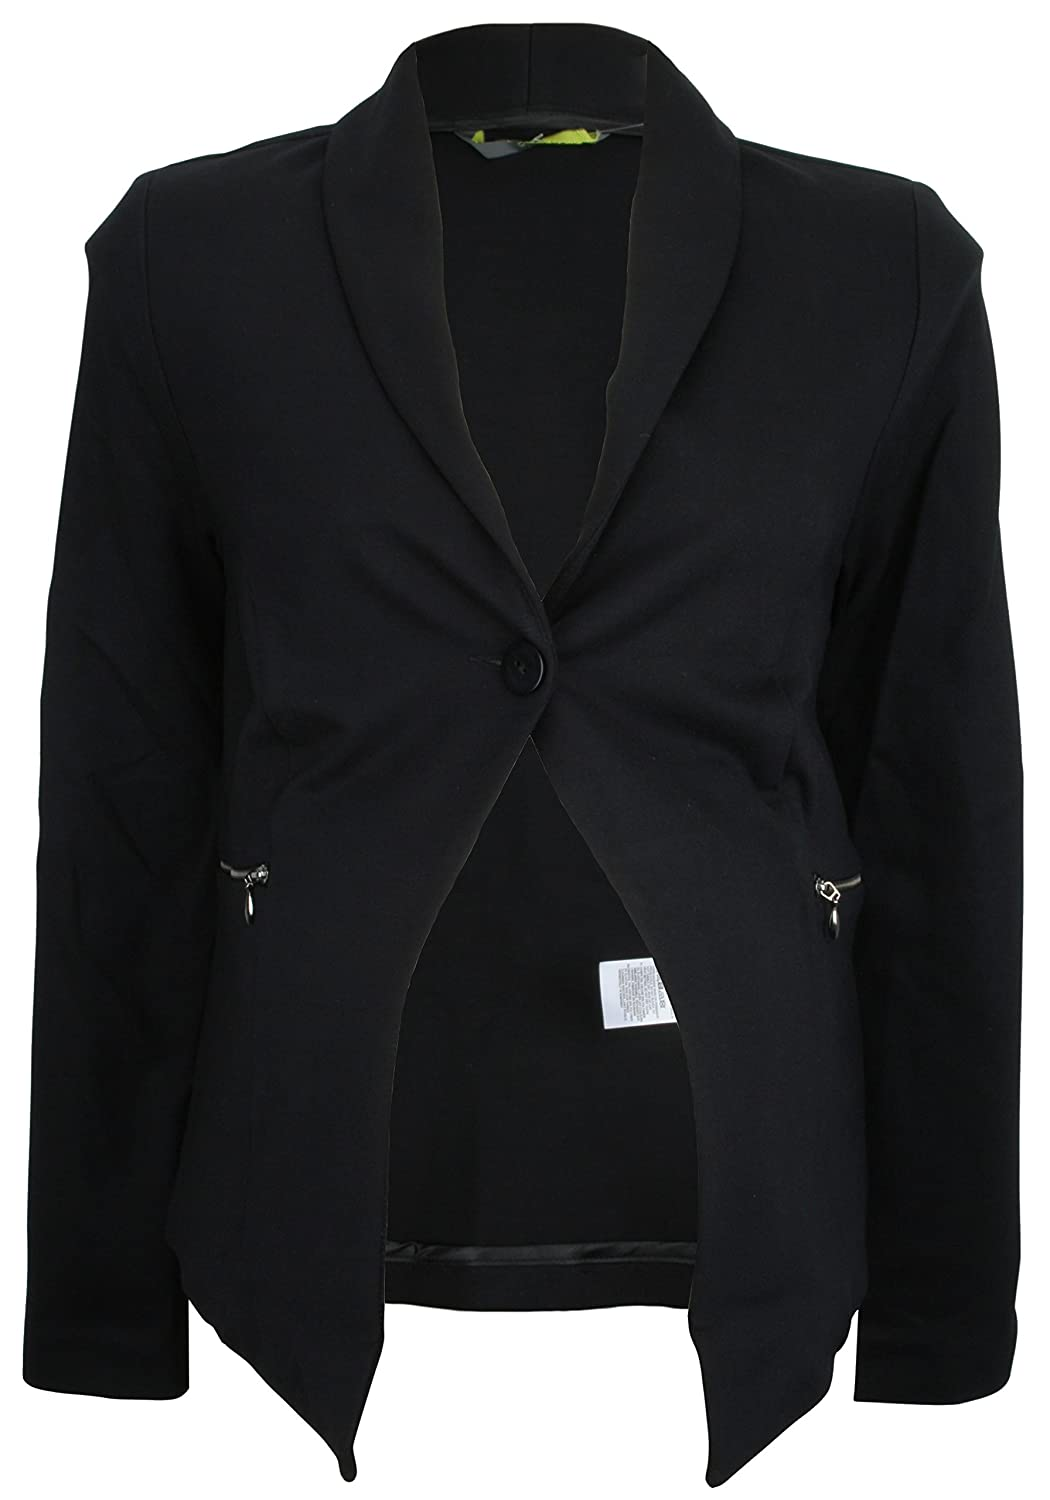 Ex-Store Maternity Stretch Jersey Tailored Jacket with Zip Pockets Black